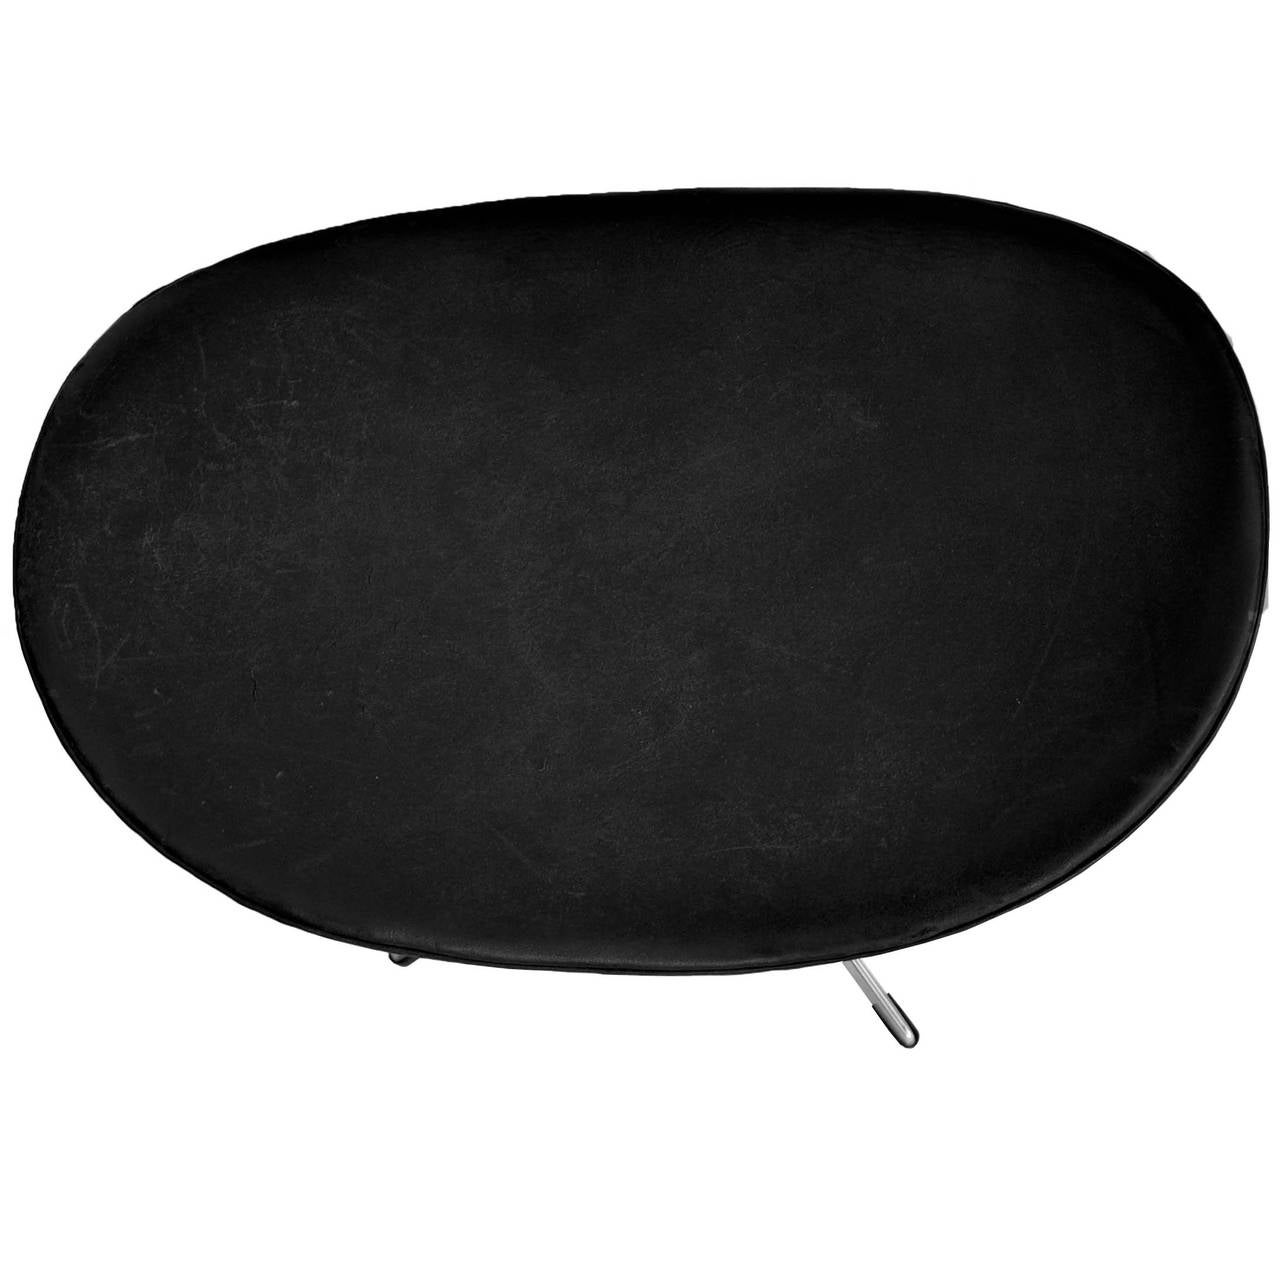 Early Egg Chair and Ottoman by Arne Jacobsen with Original Black Leather 7